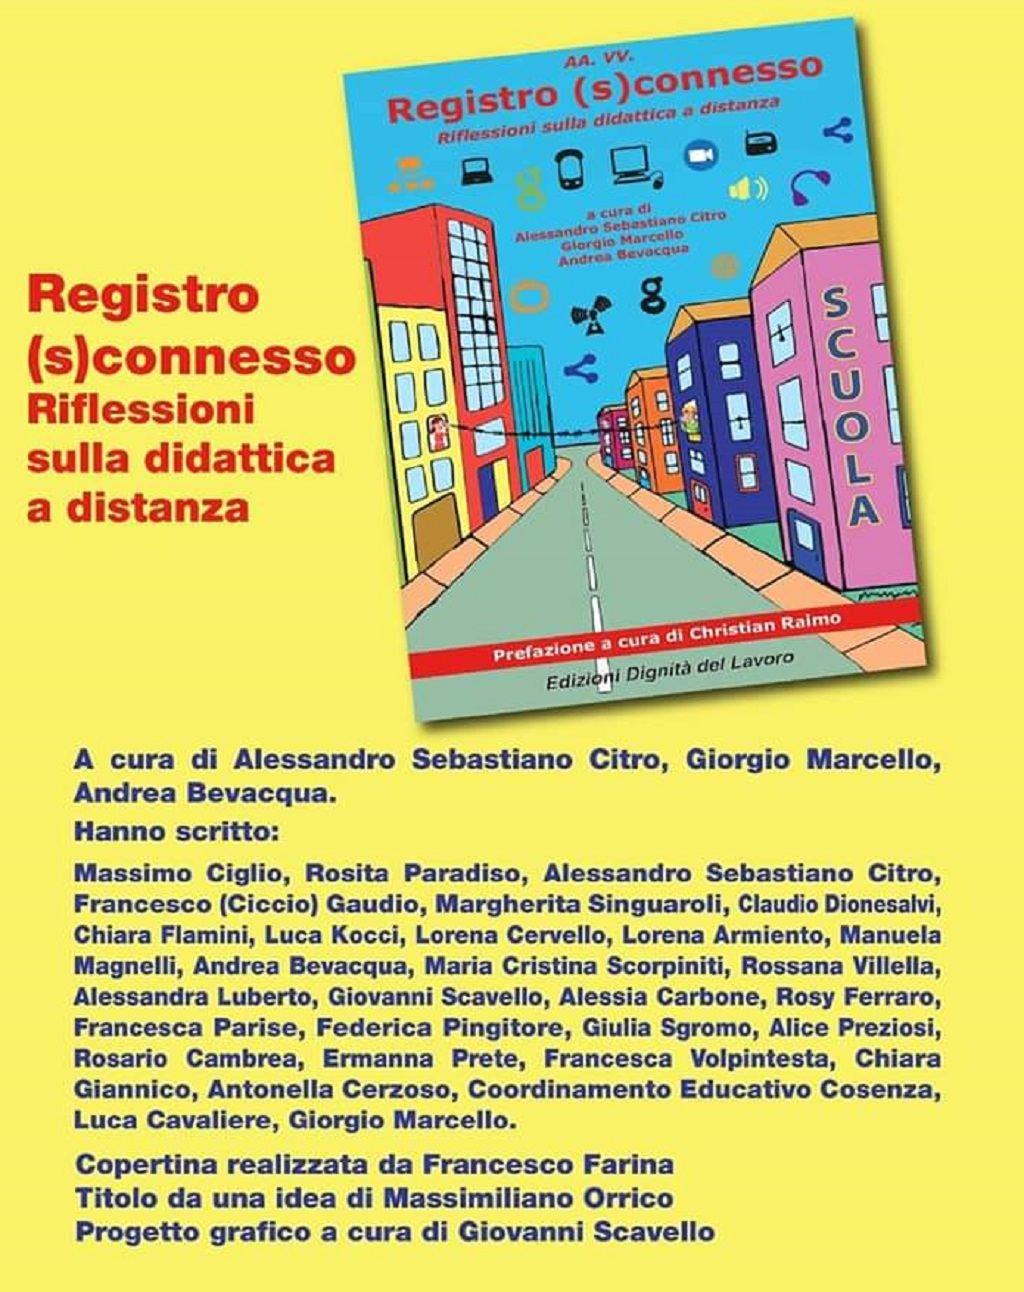 Registro (s)connesso 4